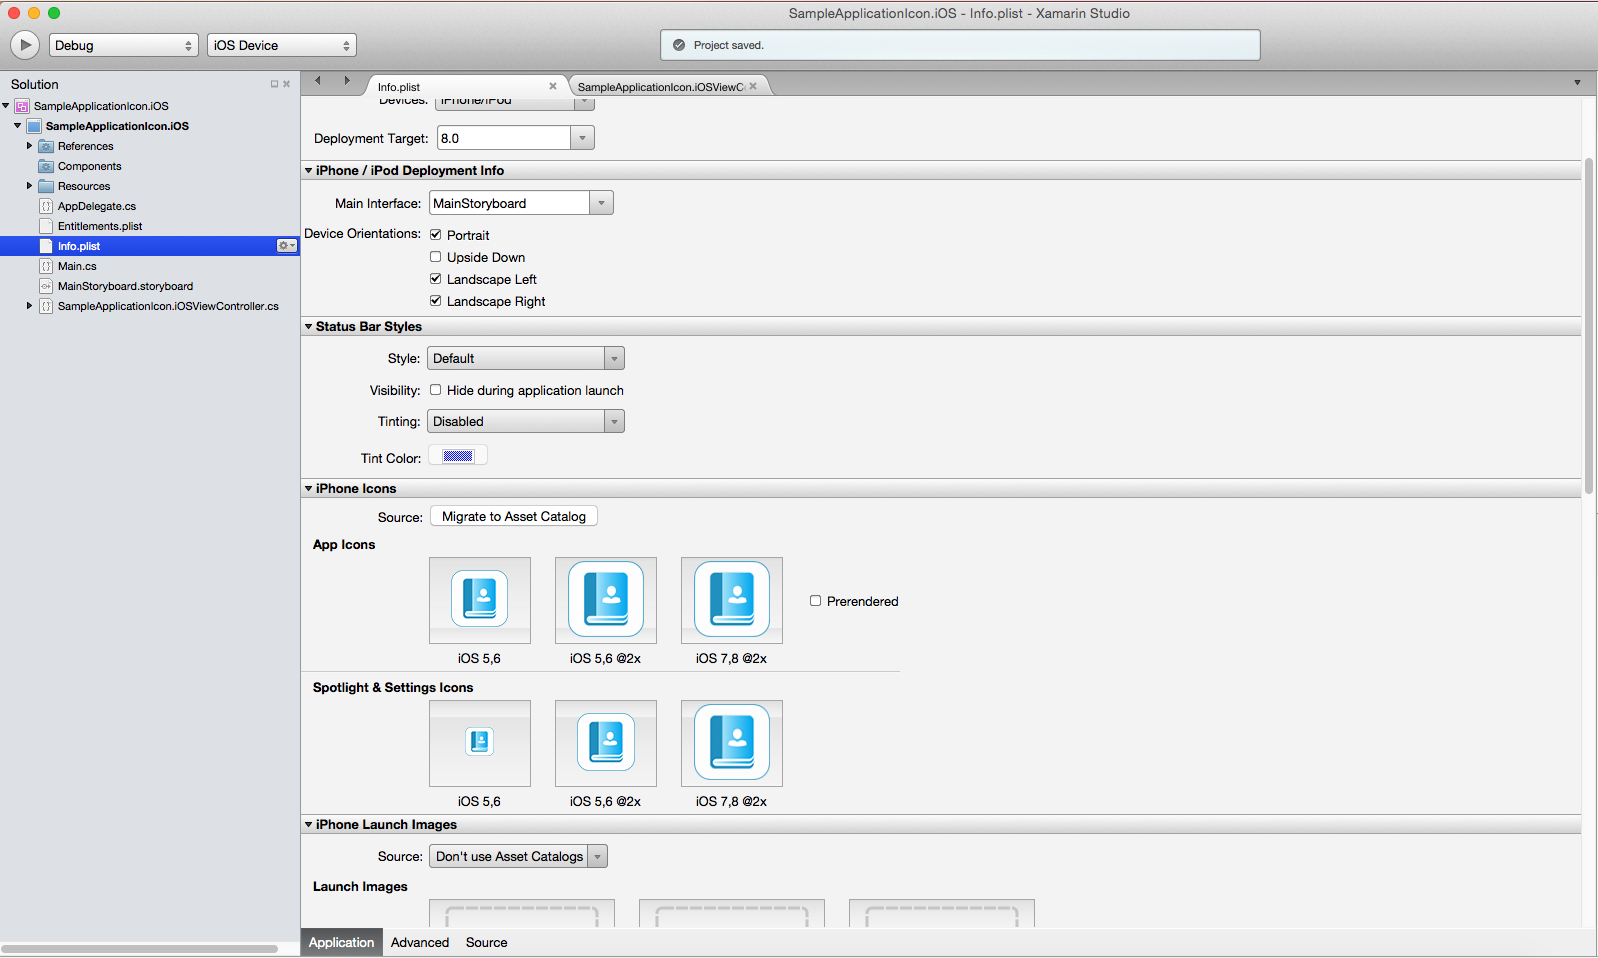 How to set Application icons and launch images in Xamarin